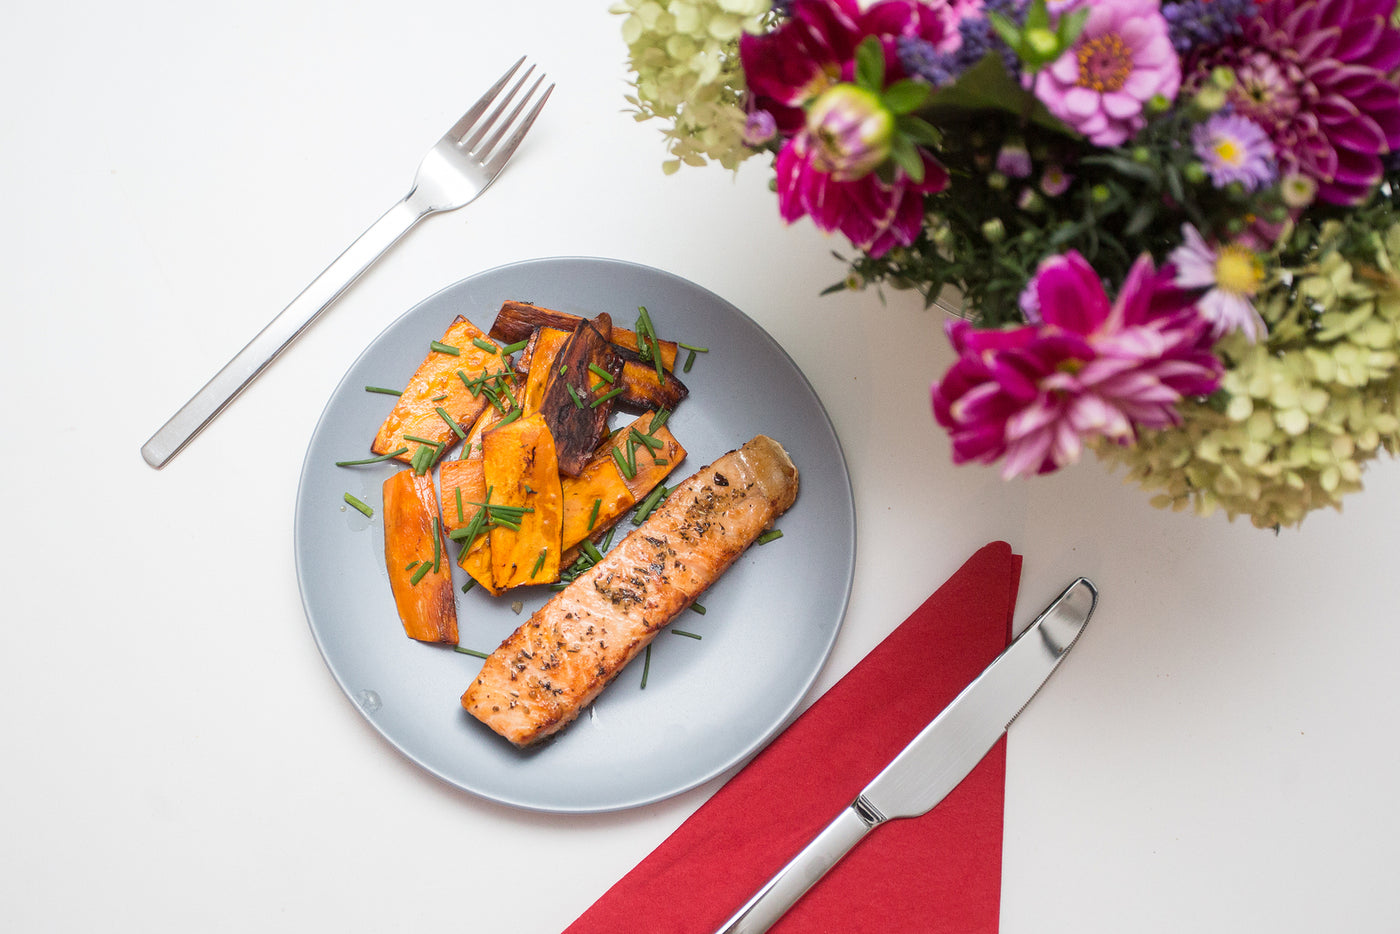 Pepper-Crusted Salmon with Sweet Potato Wedges 🐟